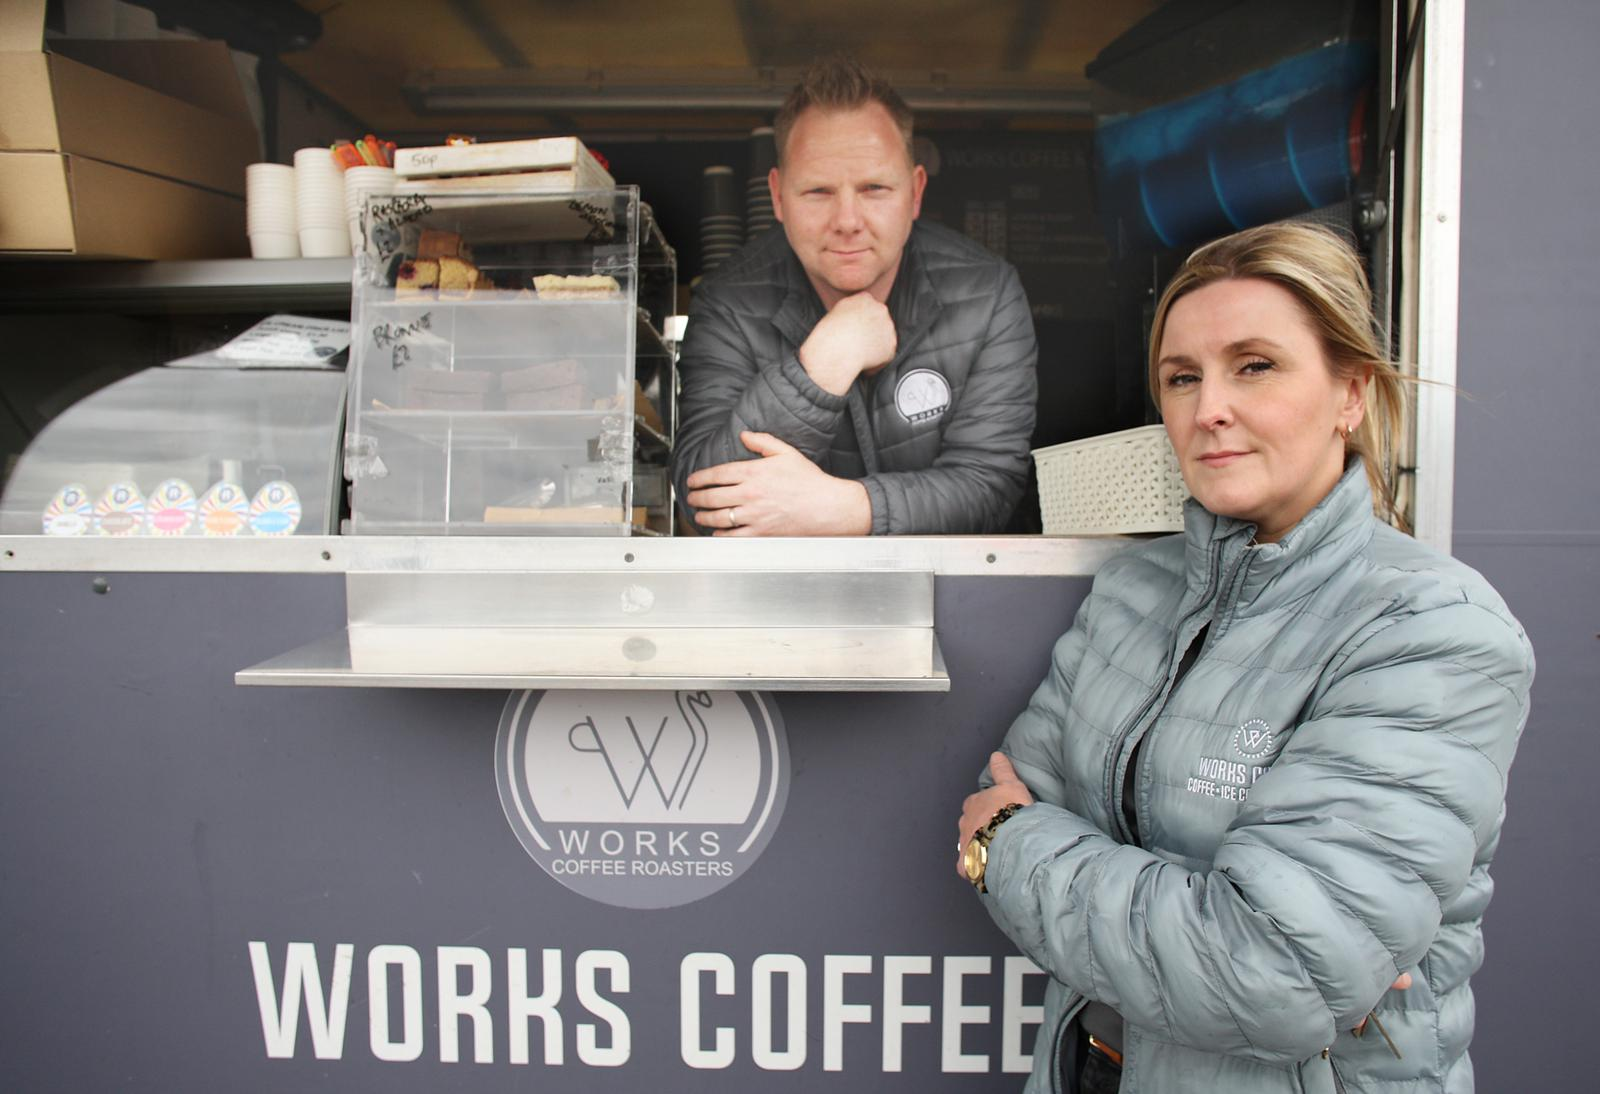 NEW BEGINNINGS: Jim and Claire Mallon of Works Coffee Roasters